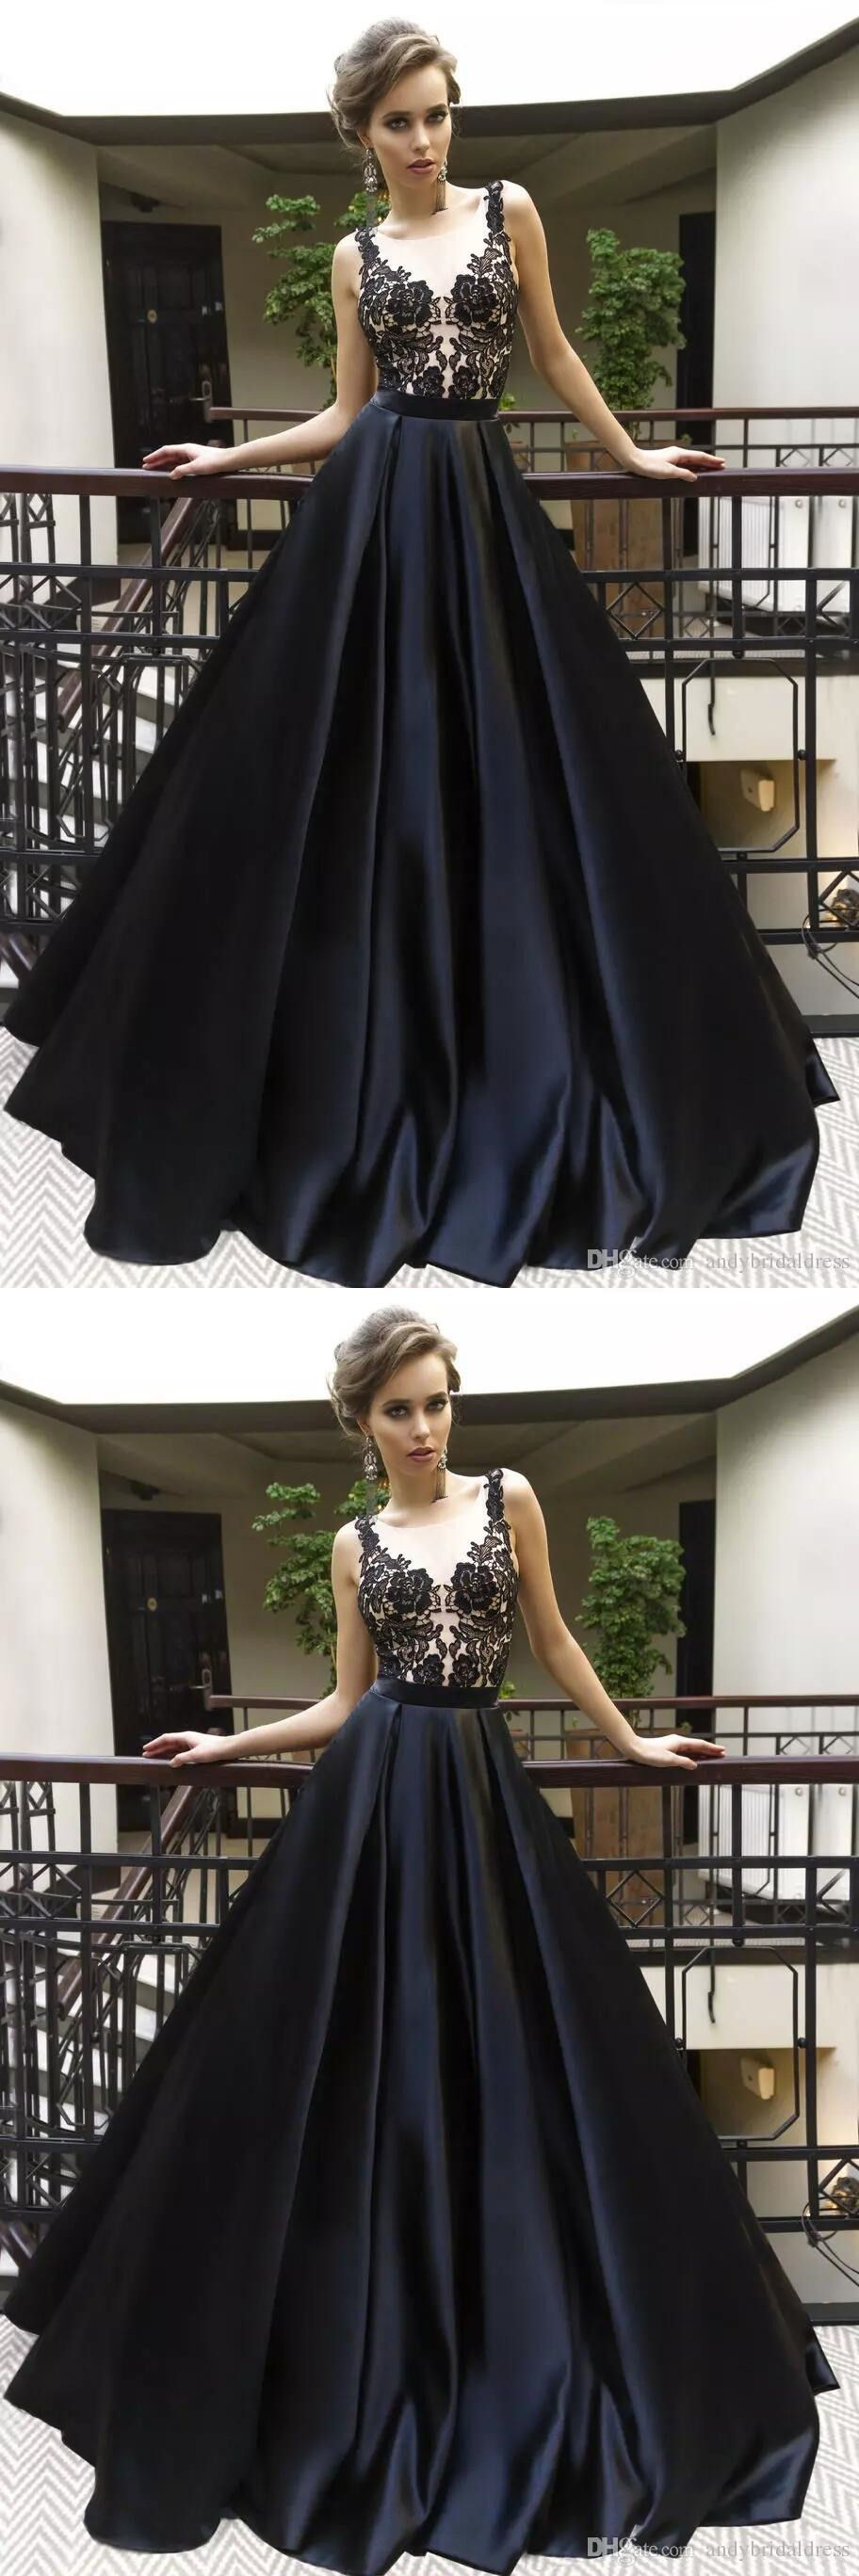 Black prom dress prom dressesevening gown graduation party